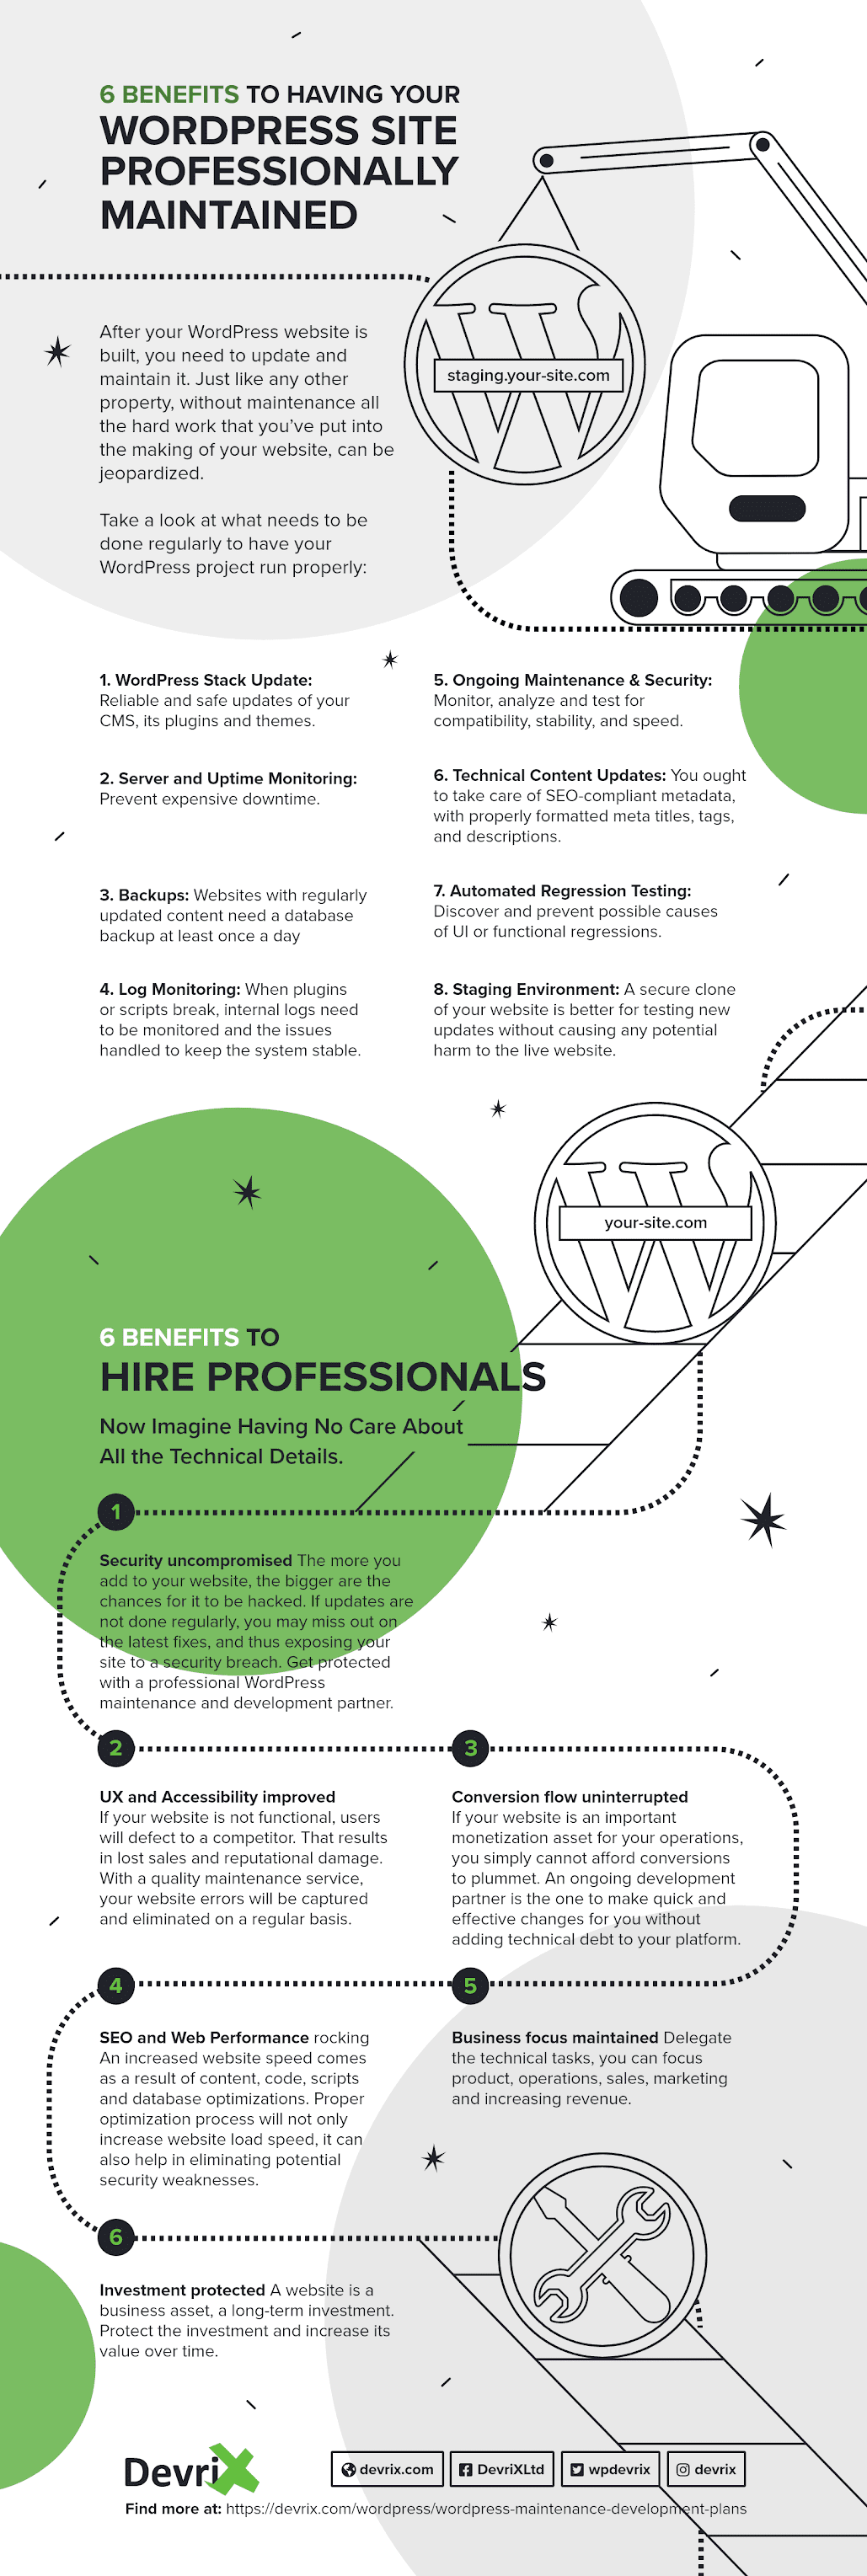 Six Benefits to Having Your WordPress Site Professionally Maintained #infographic #Website #WordPress Site #WordPress Maintenance #Services #infographics #Benefit #Business